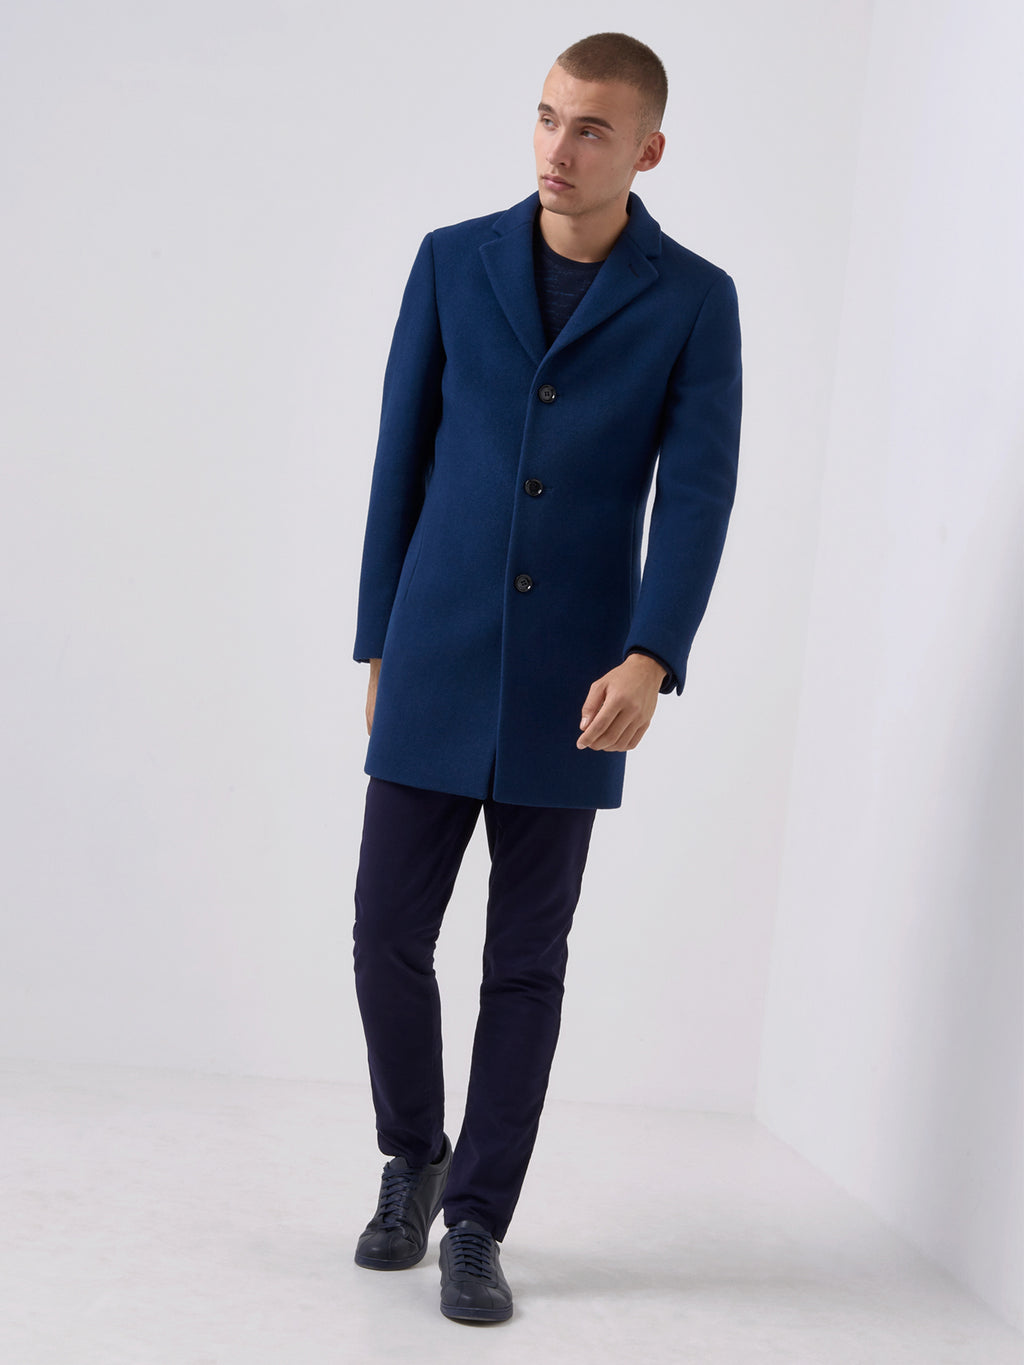 731c96fc90e ... Mens Winter Jackets from Remus Uomo Remus Uomo Overcoat 90216 Blue  Ruben Overcoat Remus Uomo